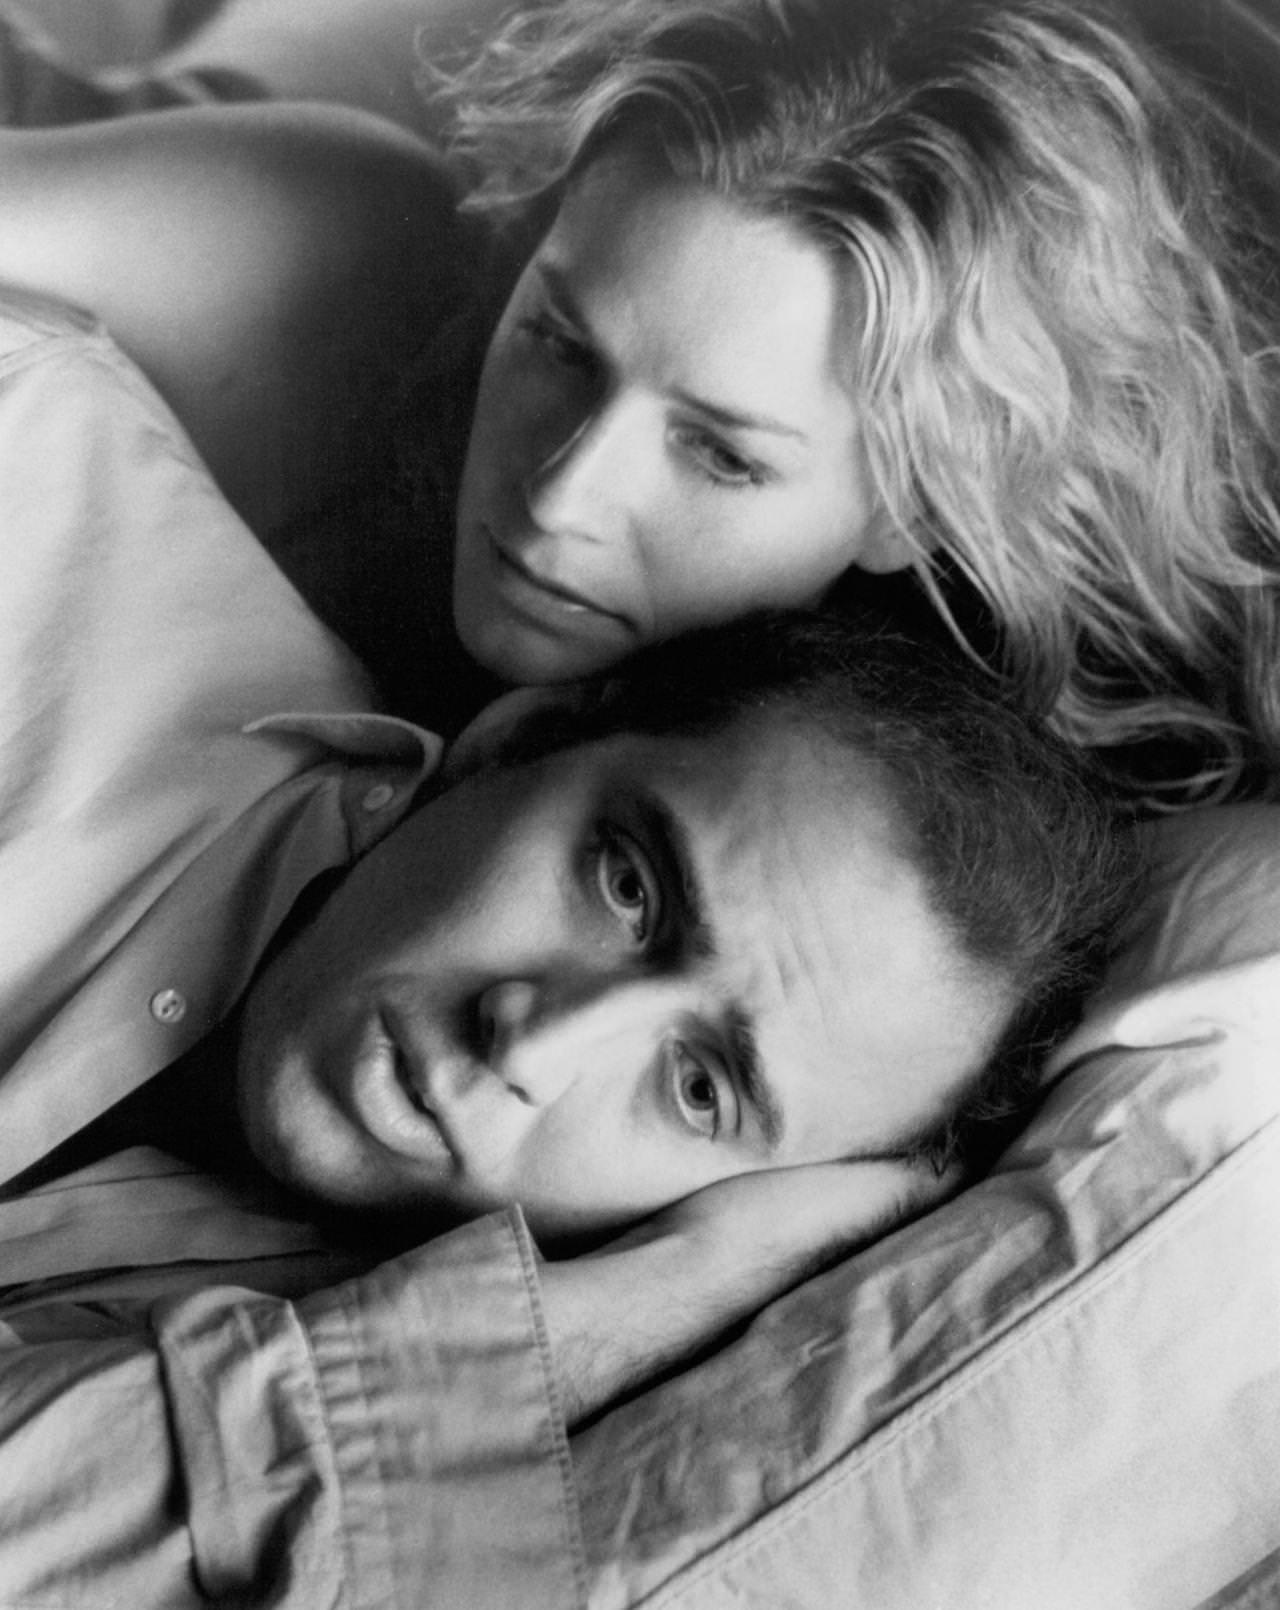 still-of-nicolas-cage-and-elisabeth-shue-in-leaving-las-vegas-large-picture-259451965